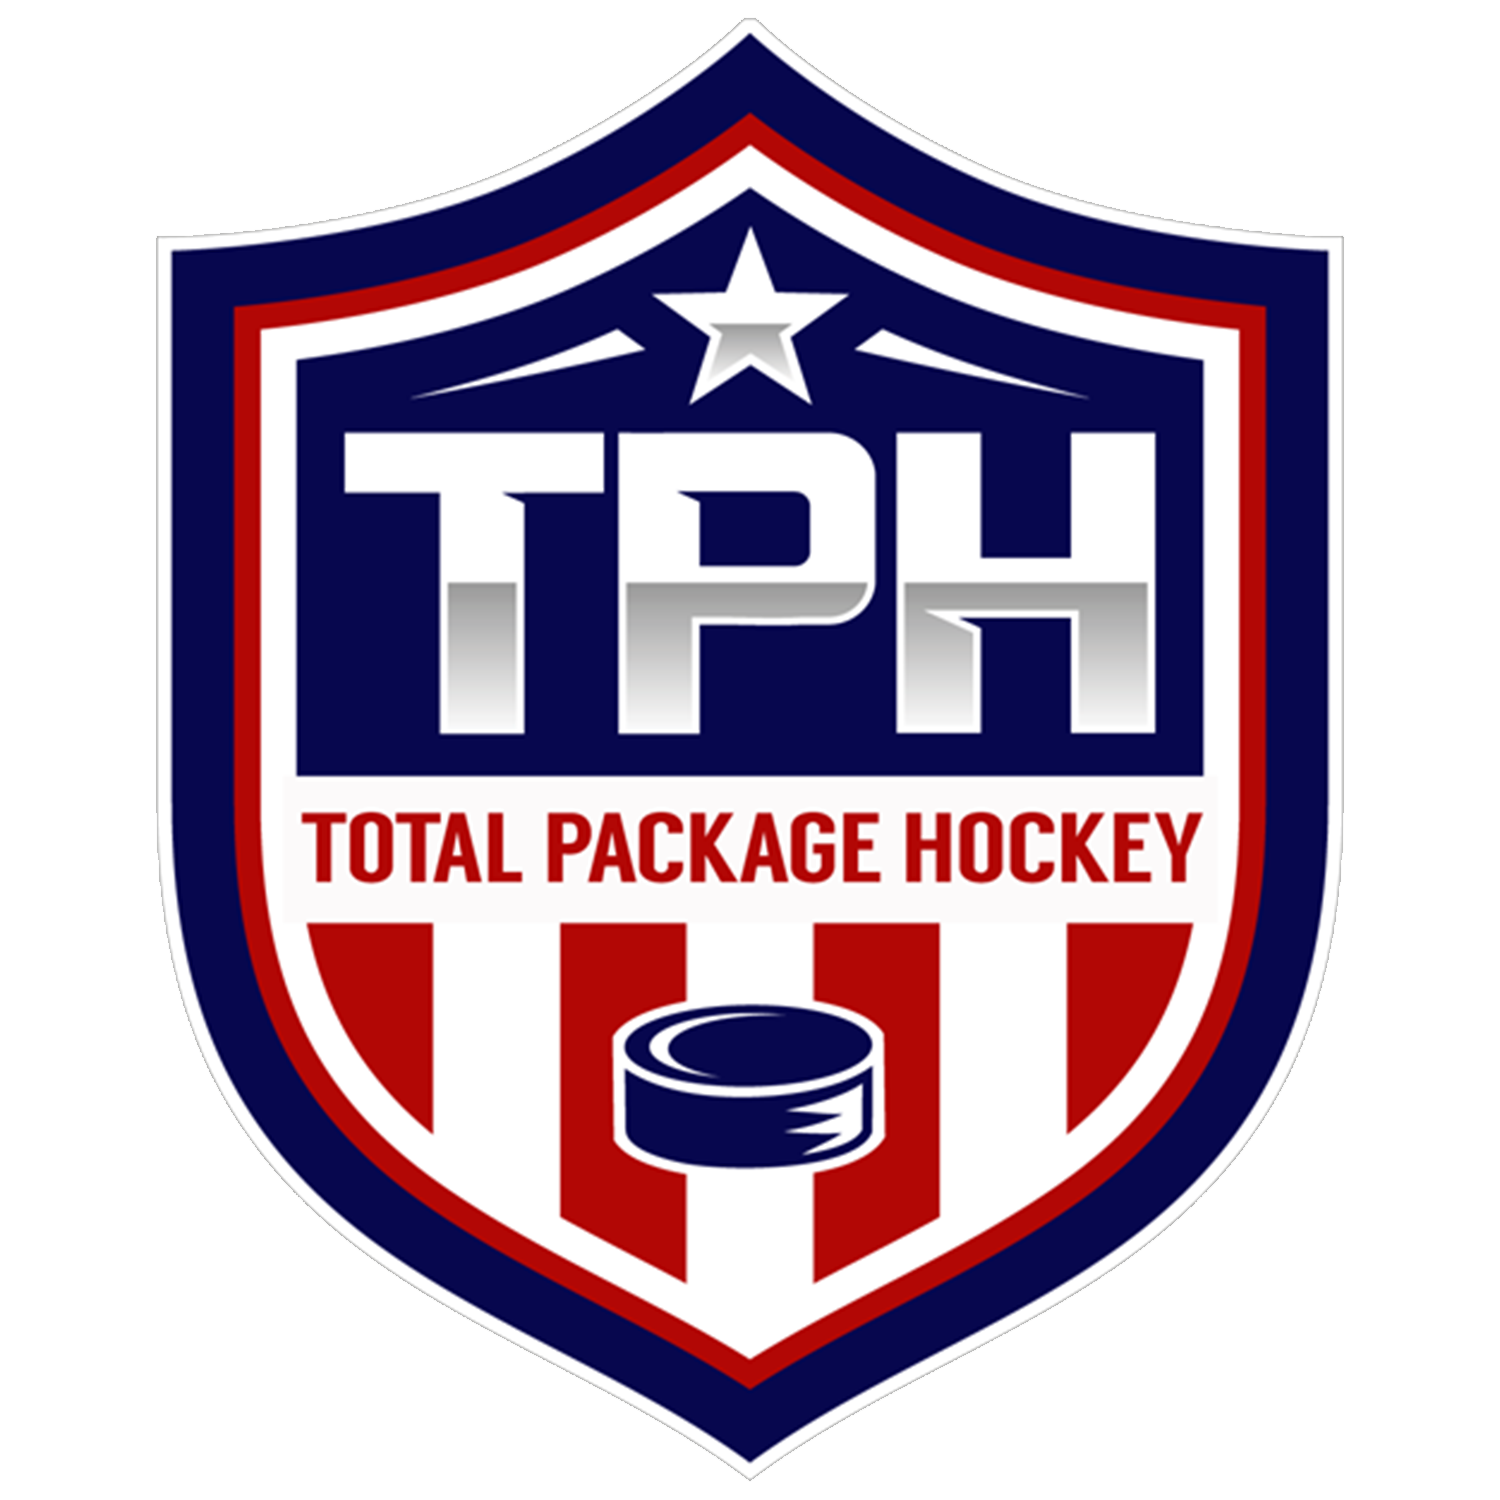 Total Package Hockey